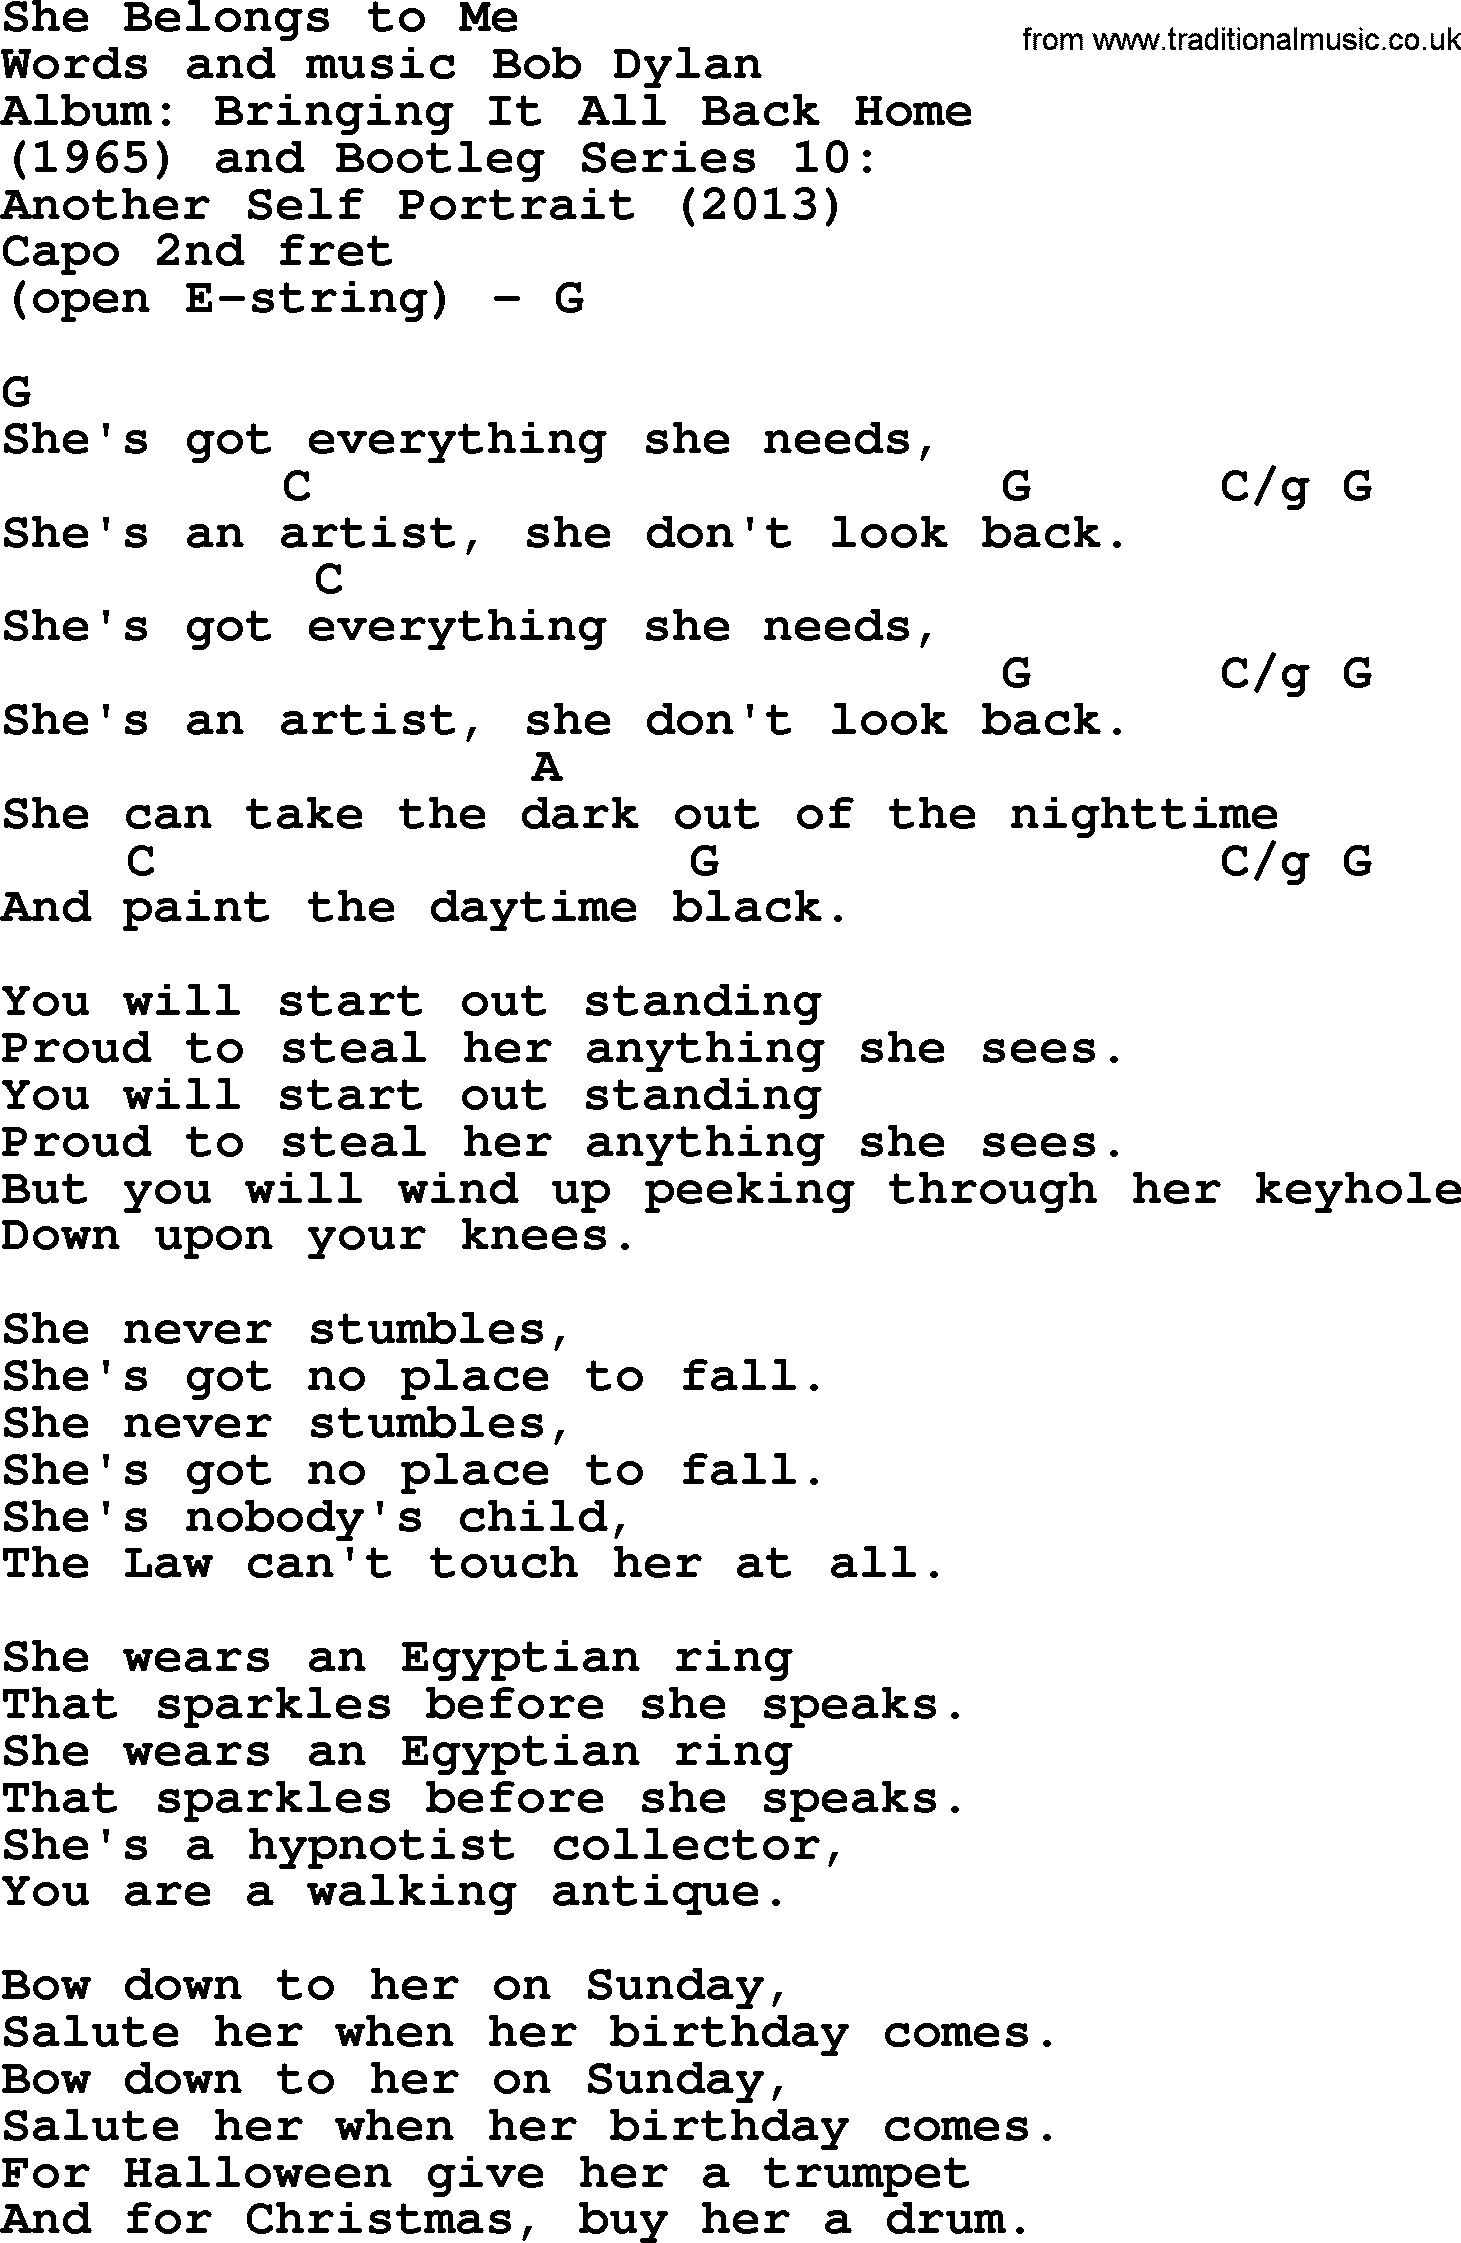 You Belong With Me Chords Bob Dylan Song She Belongs To Me Lyrics And Chords